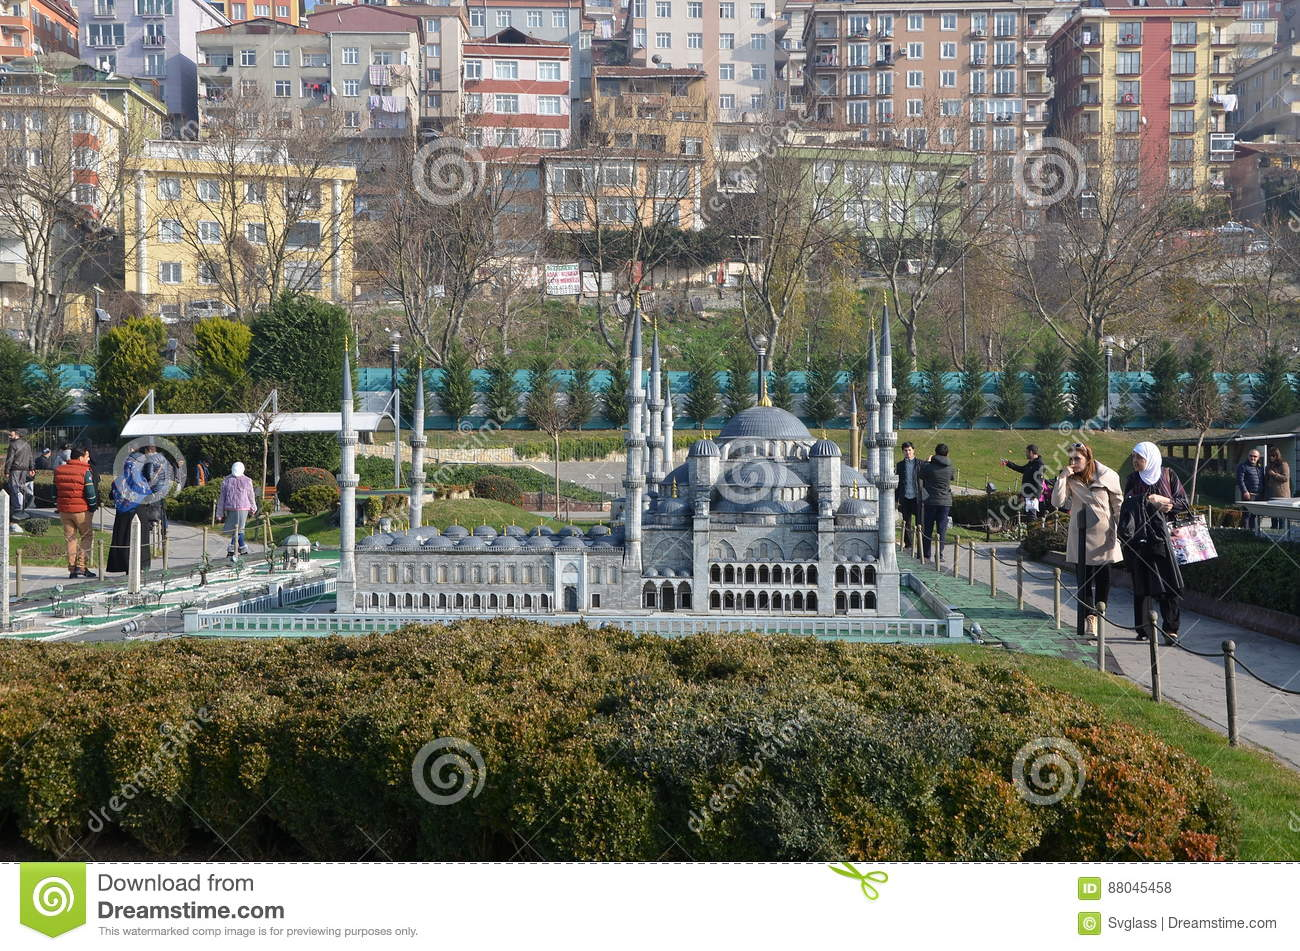 Scale model of Sultan Ahmed Mosque